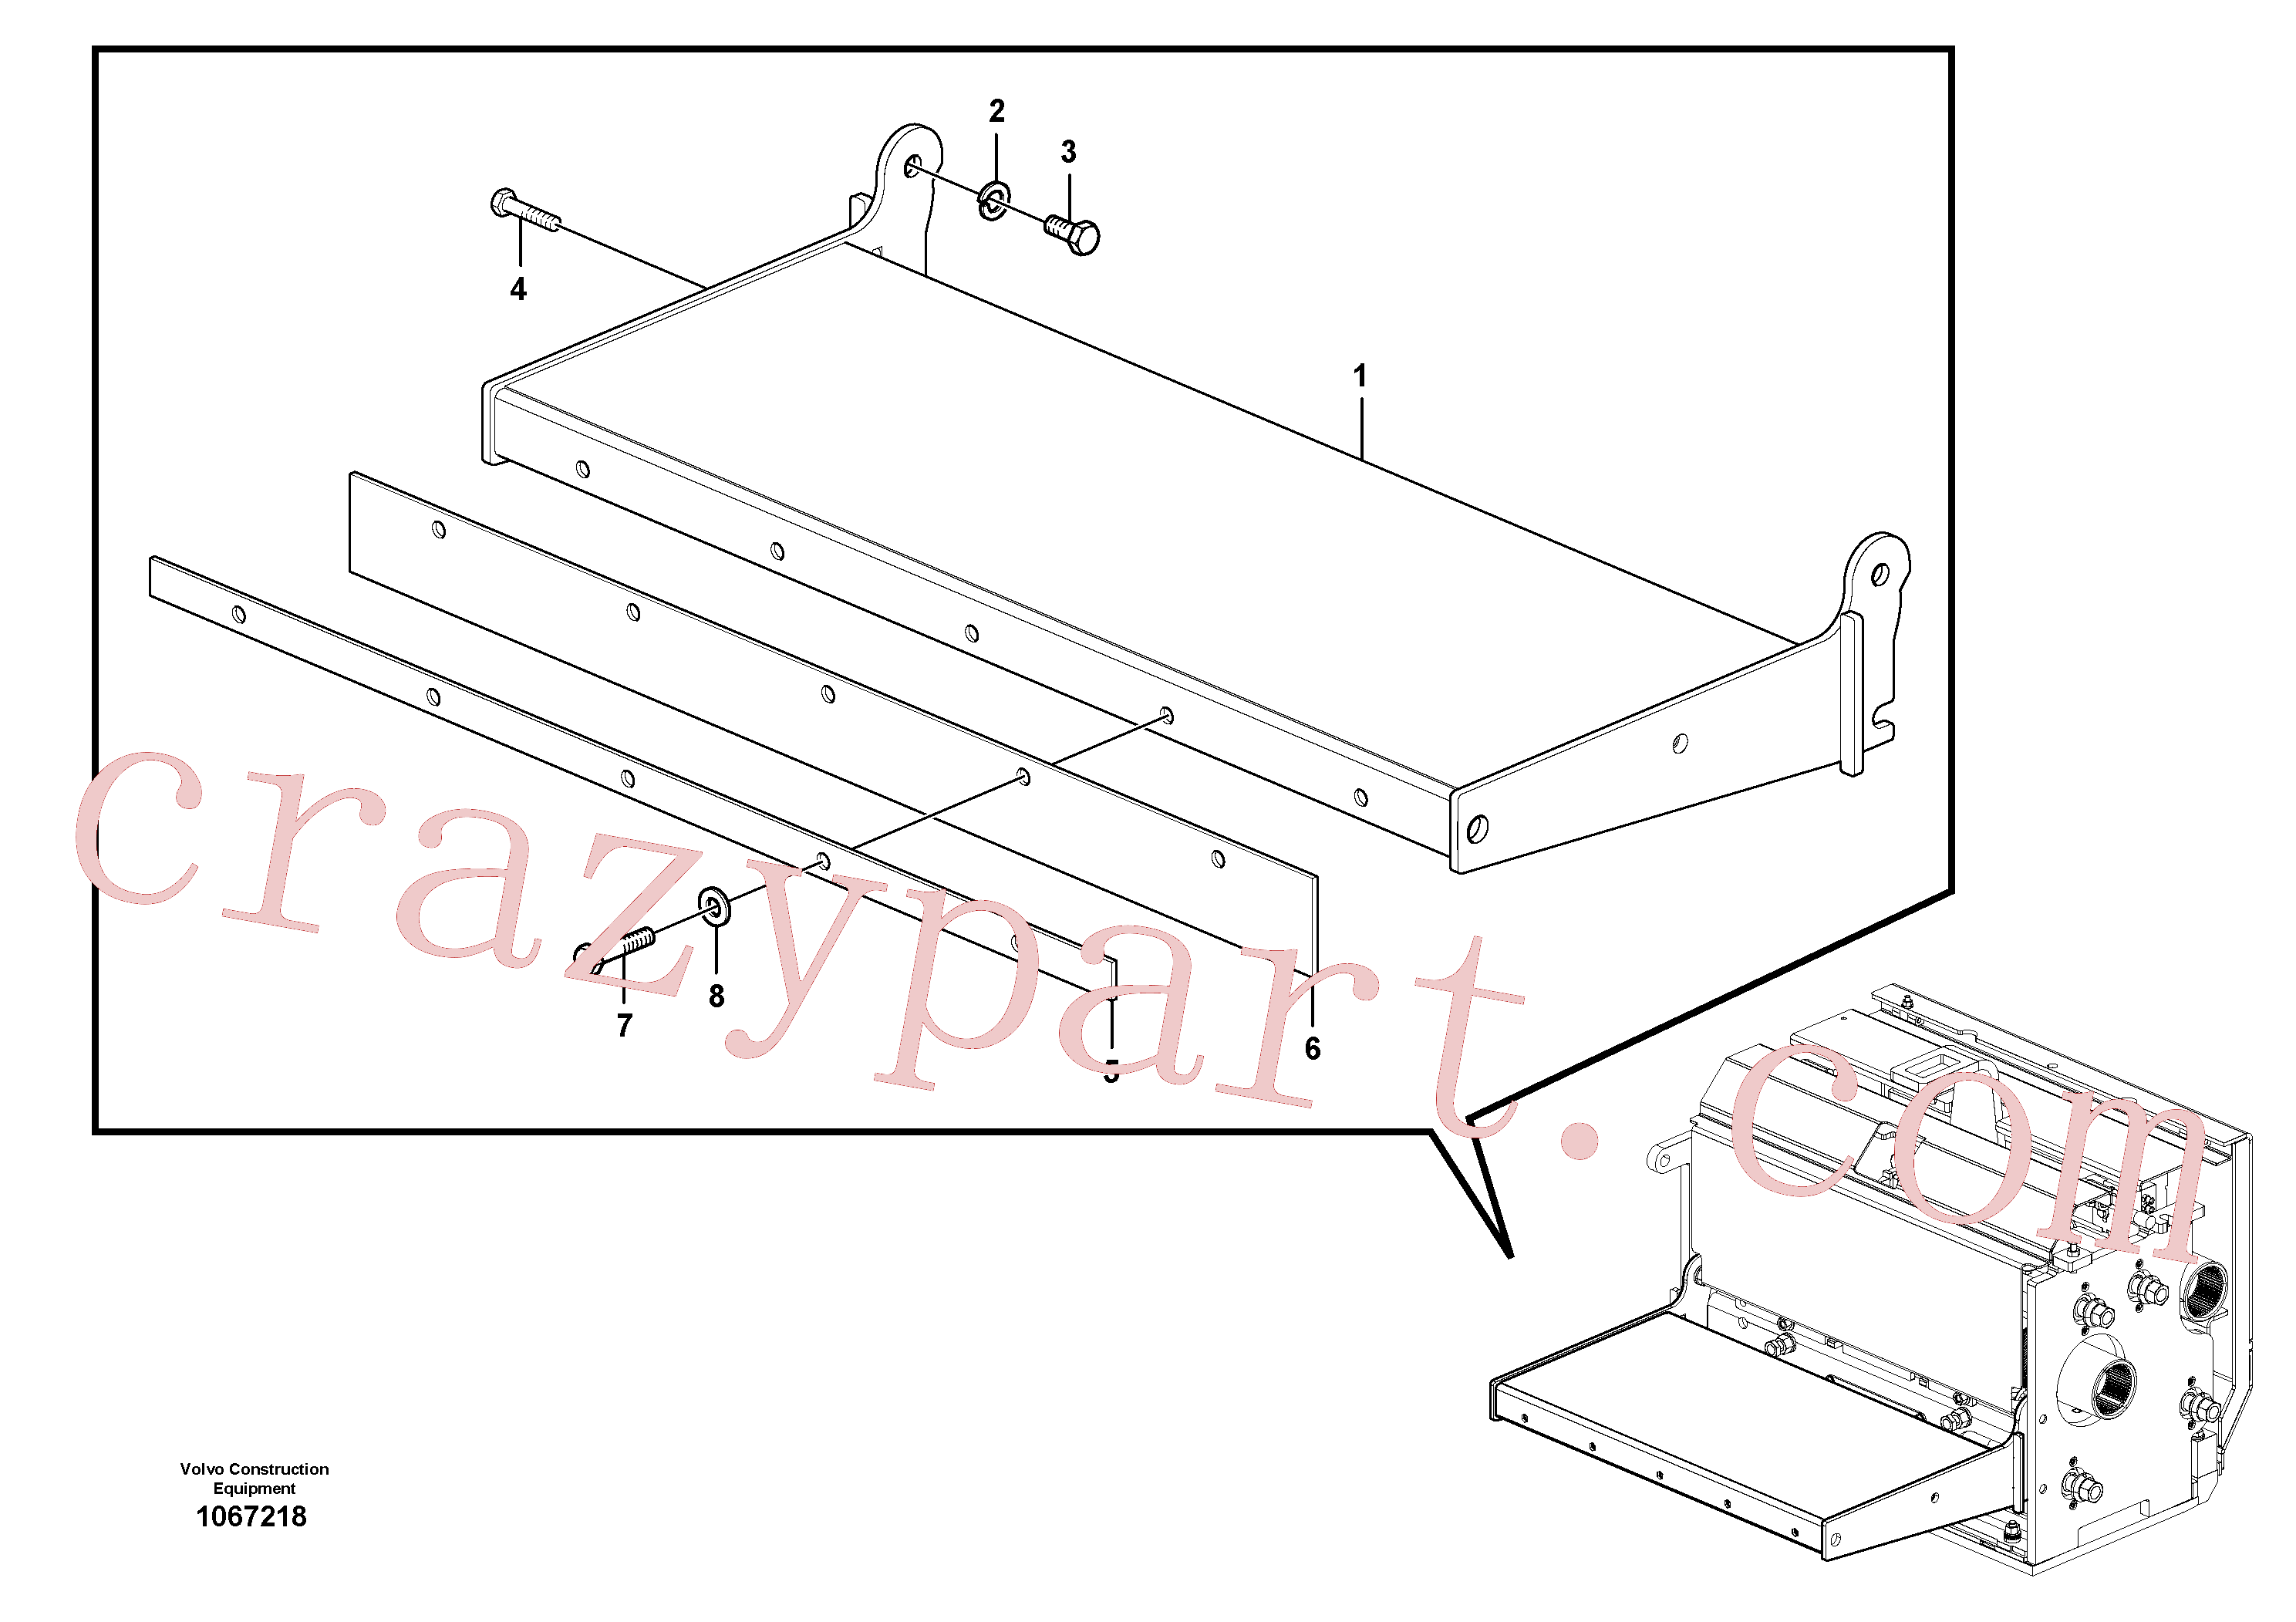 RM80765134 for Volvo Catwalk(1067218 assembly)